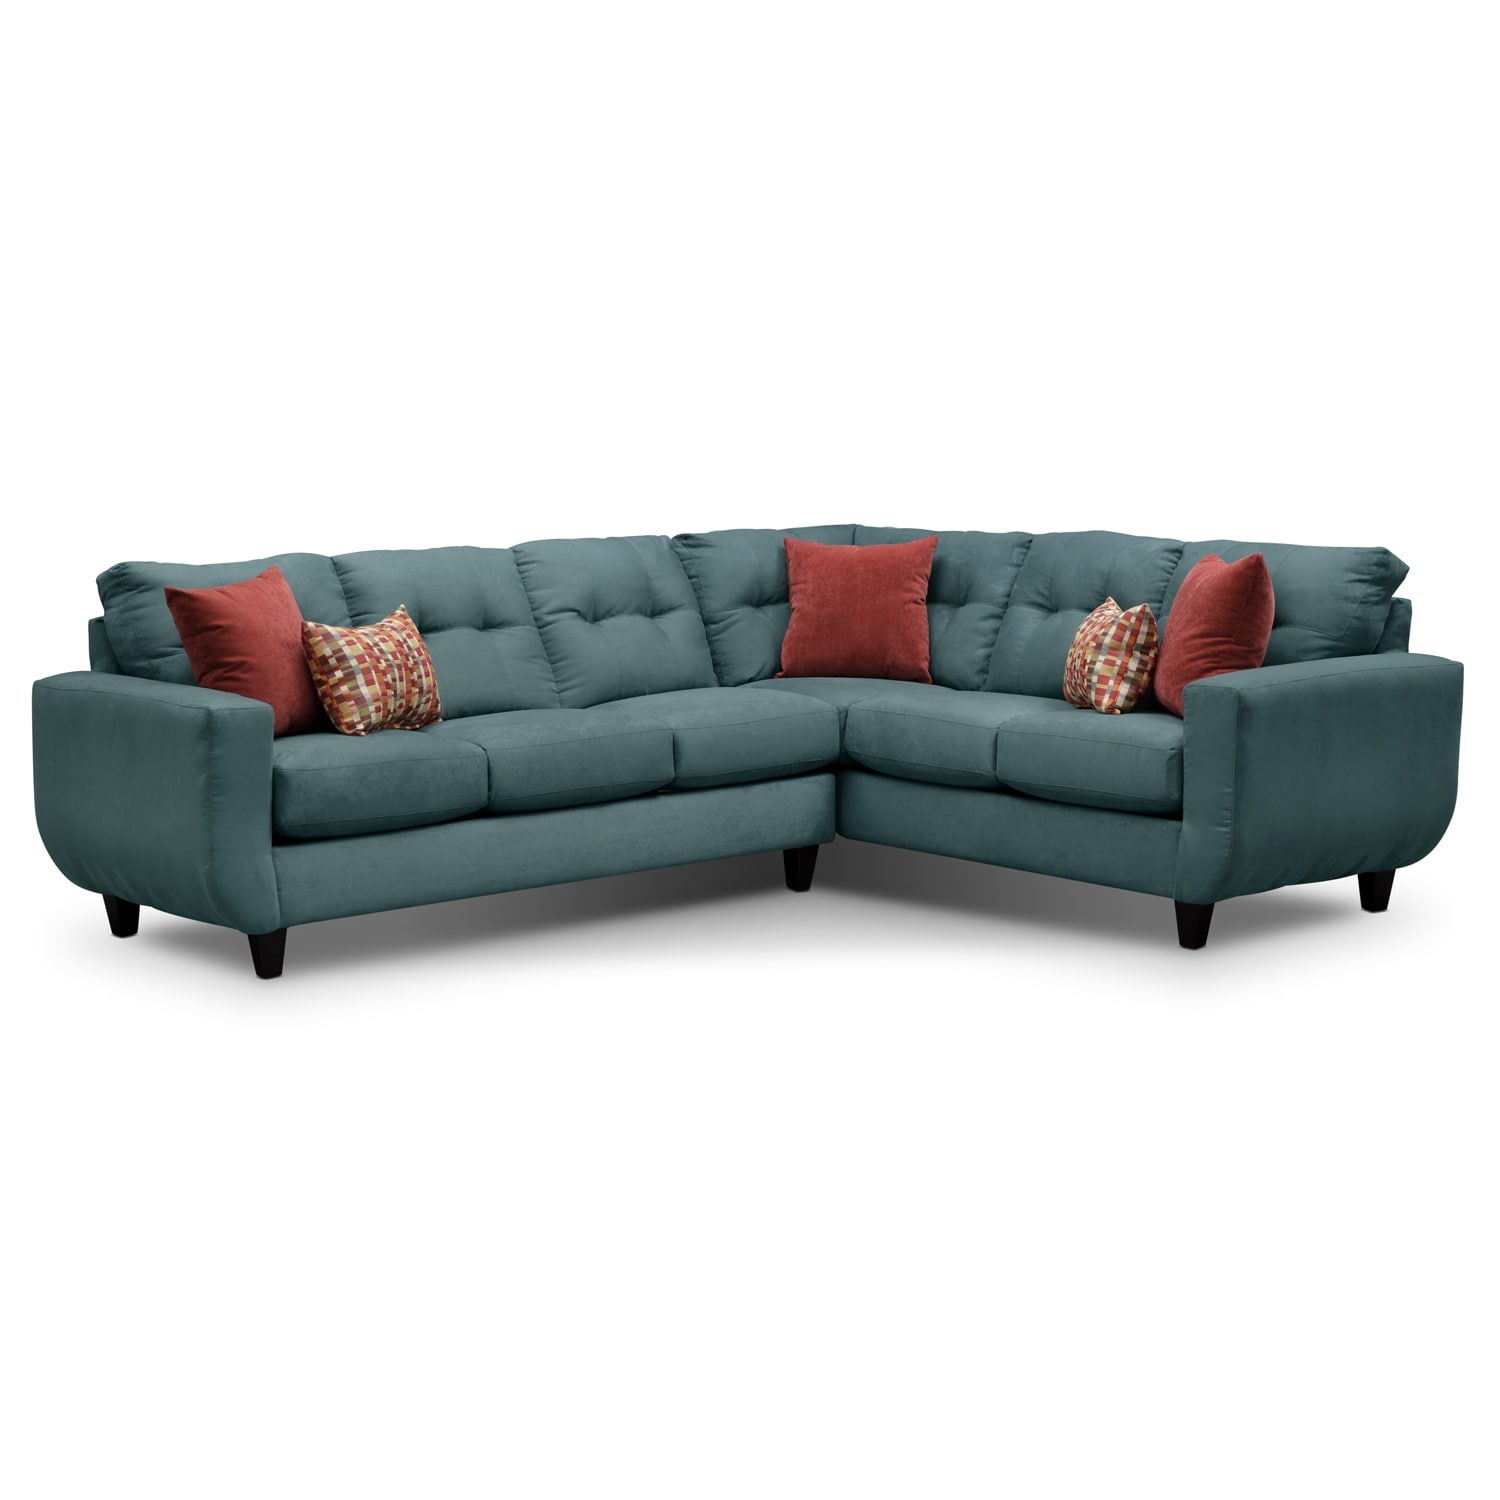 Living Room Furniture - West Village 2-Piece Sectional - Blue